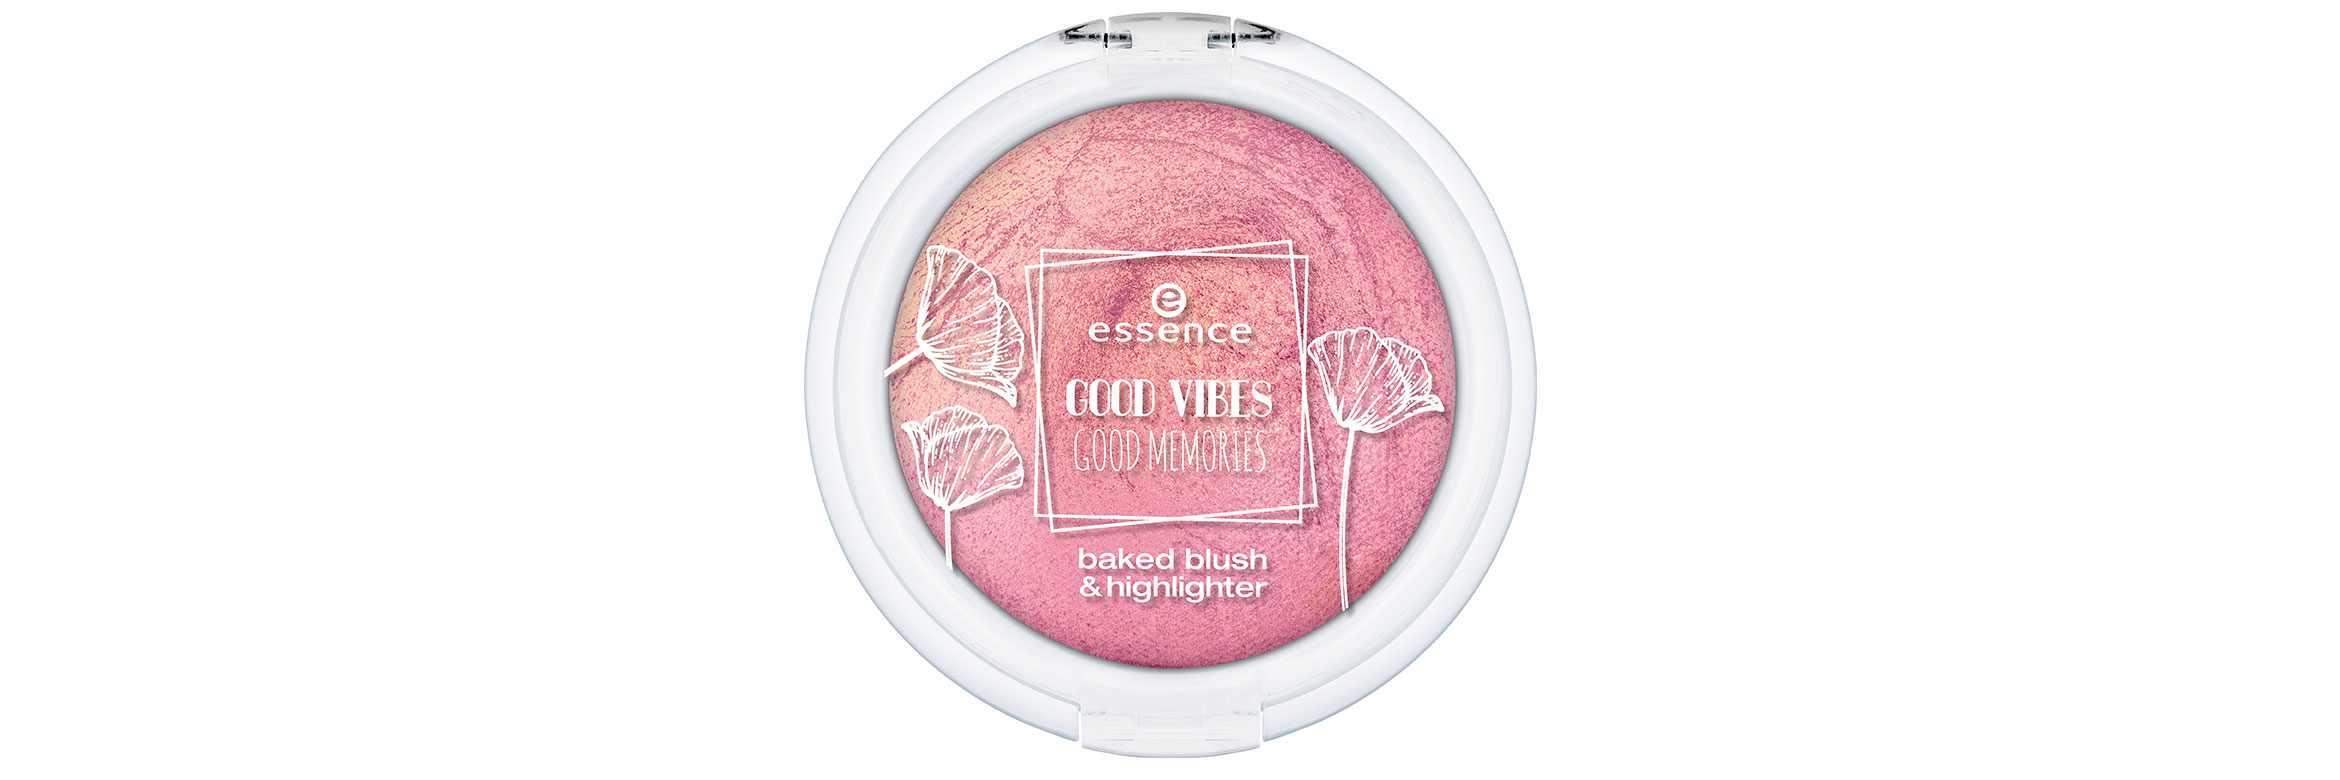 Essence-good-vibes-good-memories-baked-blush-en-highlighter